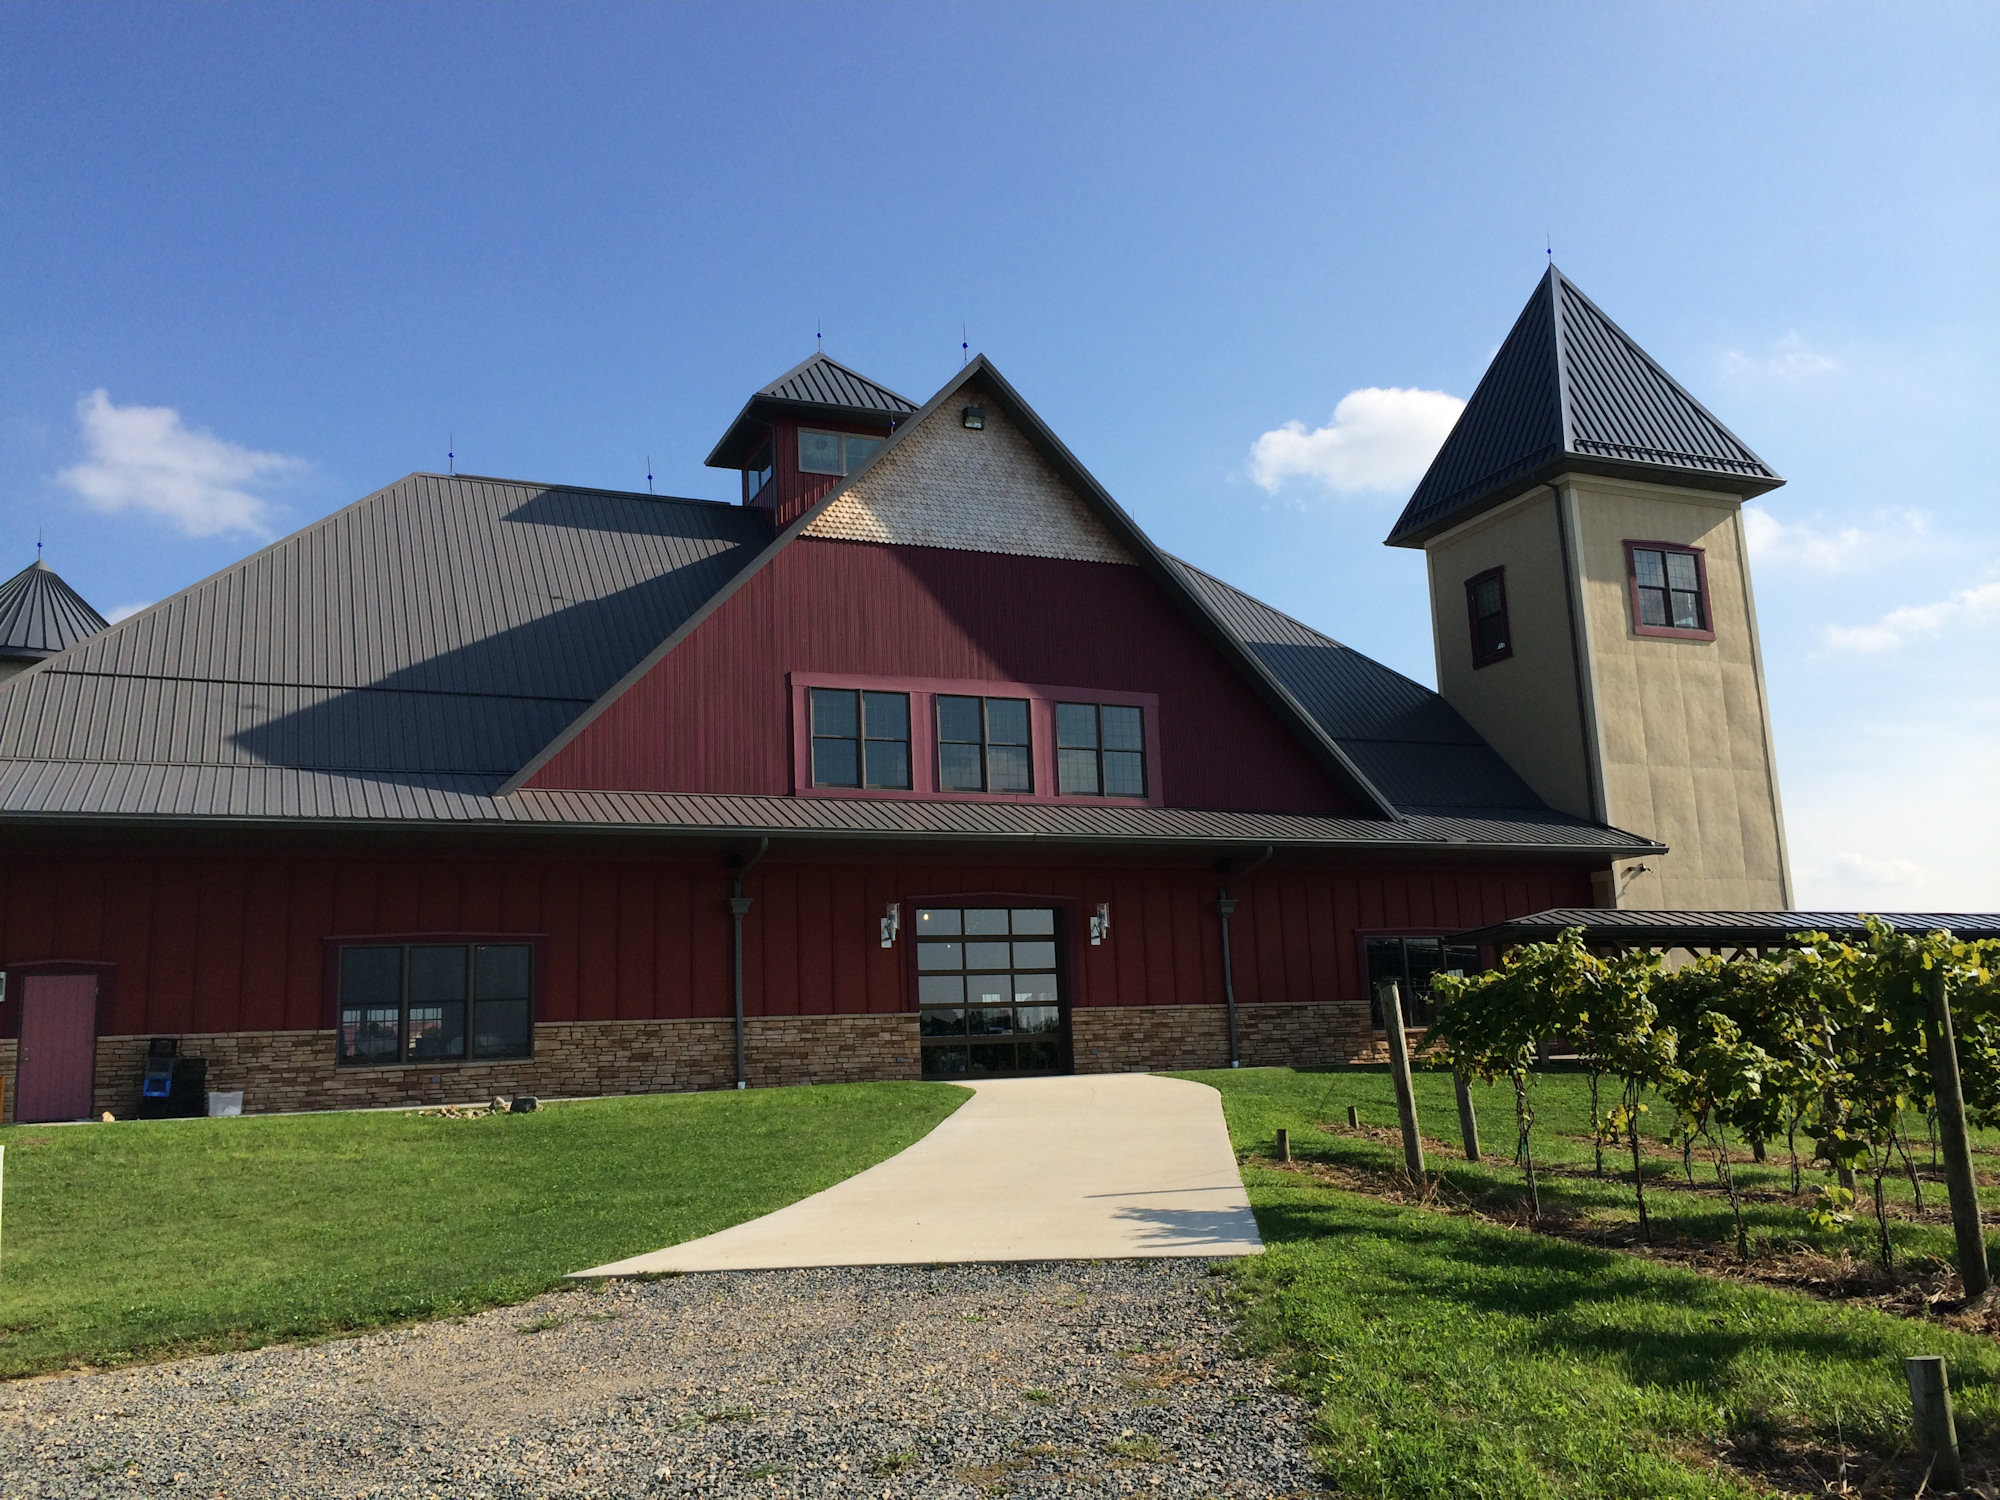 Breitenbach Wine Cellars – The Tool Shed is One Cool Shed